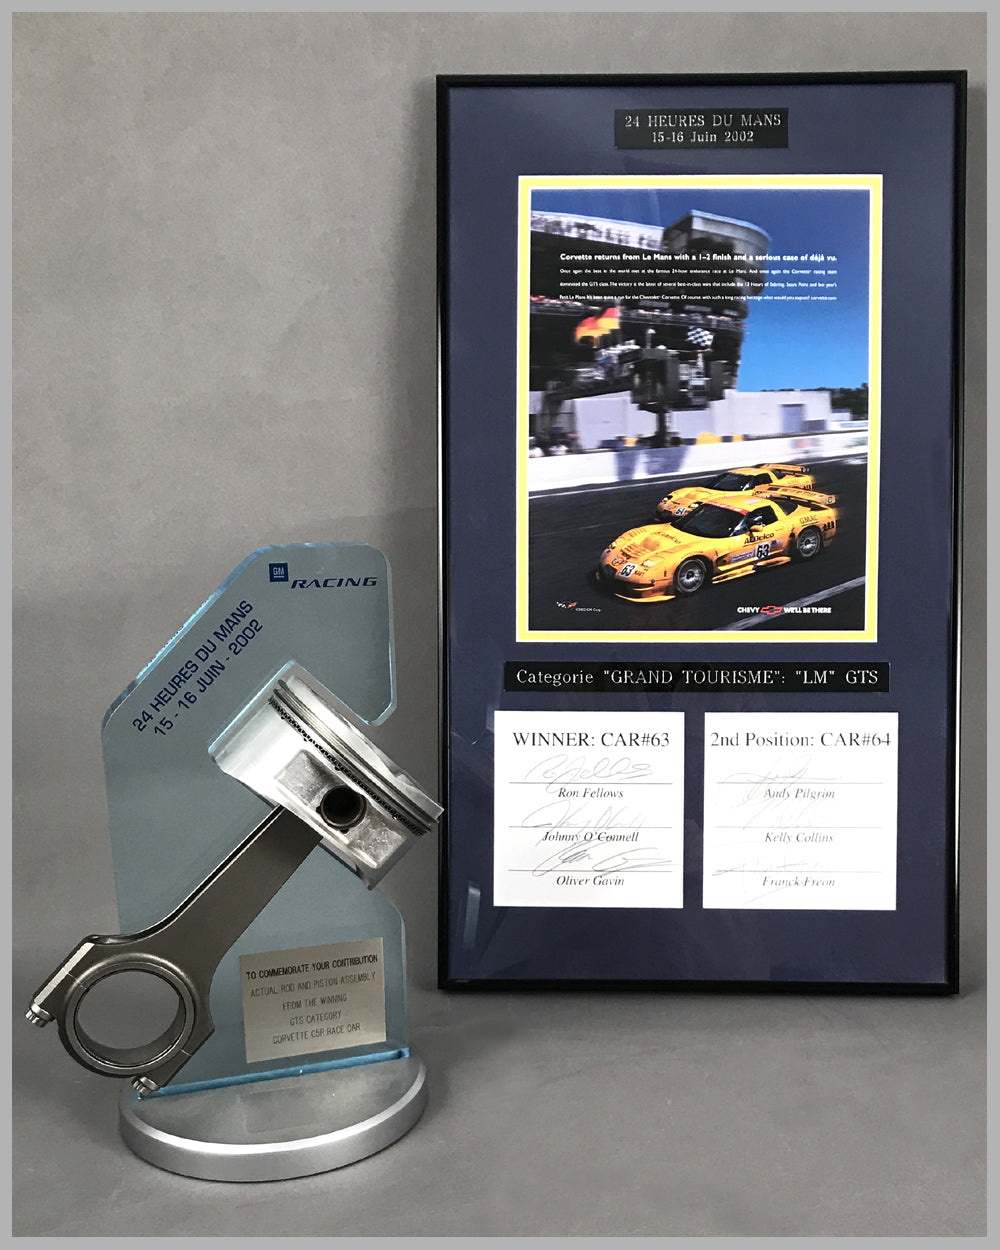 2002 - 24 Heures Du Mans Piston and Rod Assembly with ad copy autographed by drivers